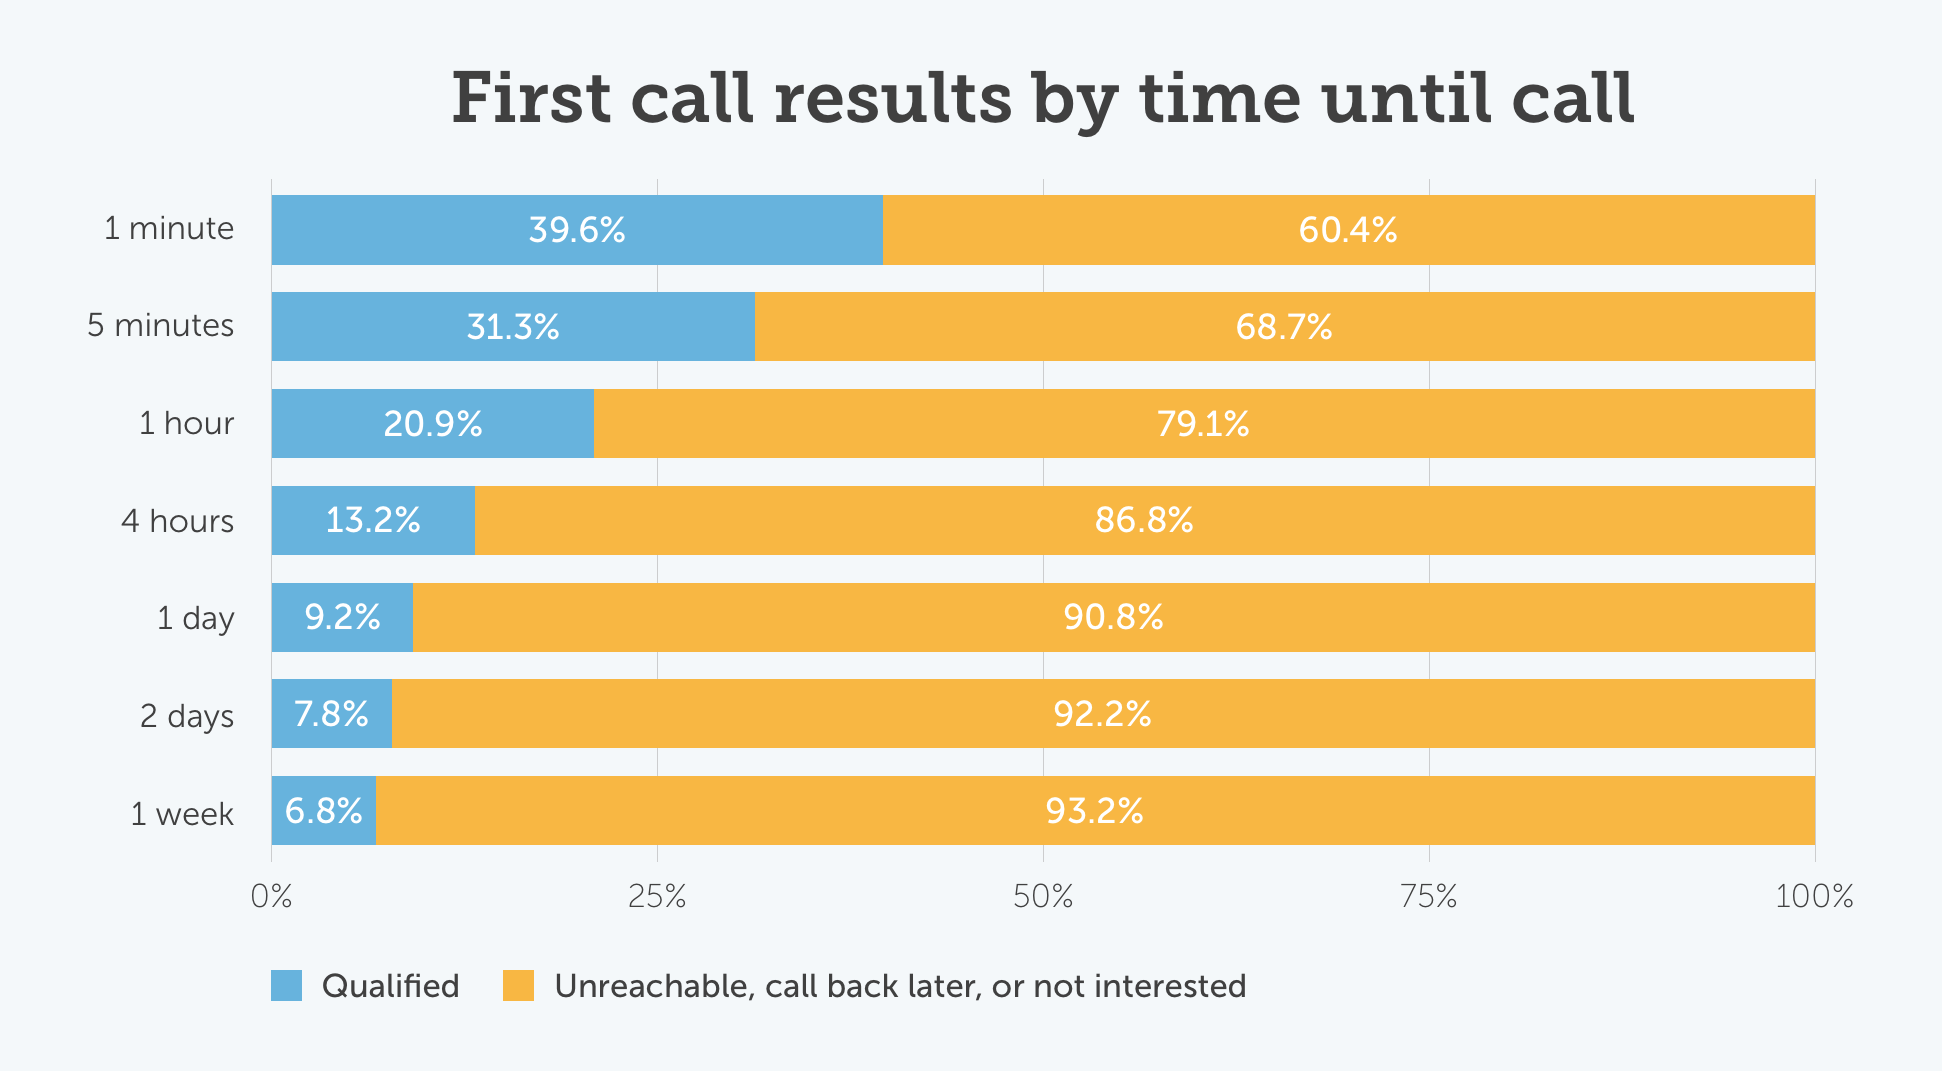 First call results by time until call